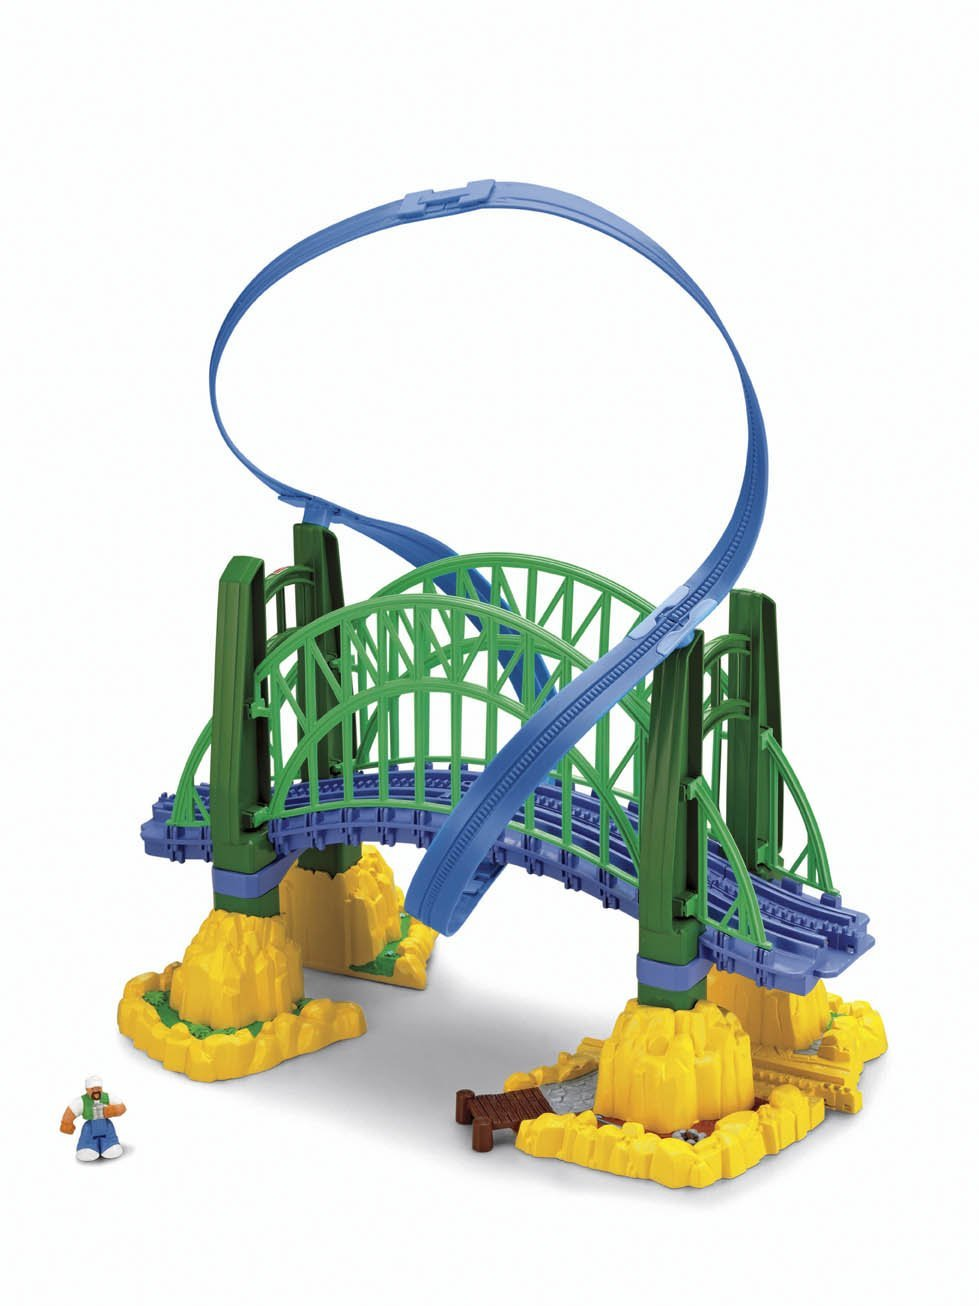 Fisher-Price GeoTrax Rail and Road System Fly-By Bridge with GeoAir Expansion Track